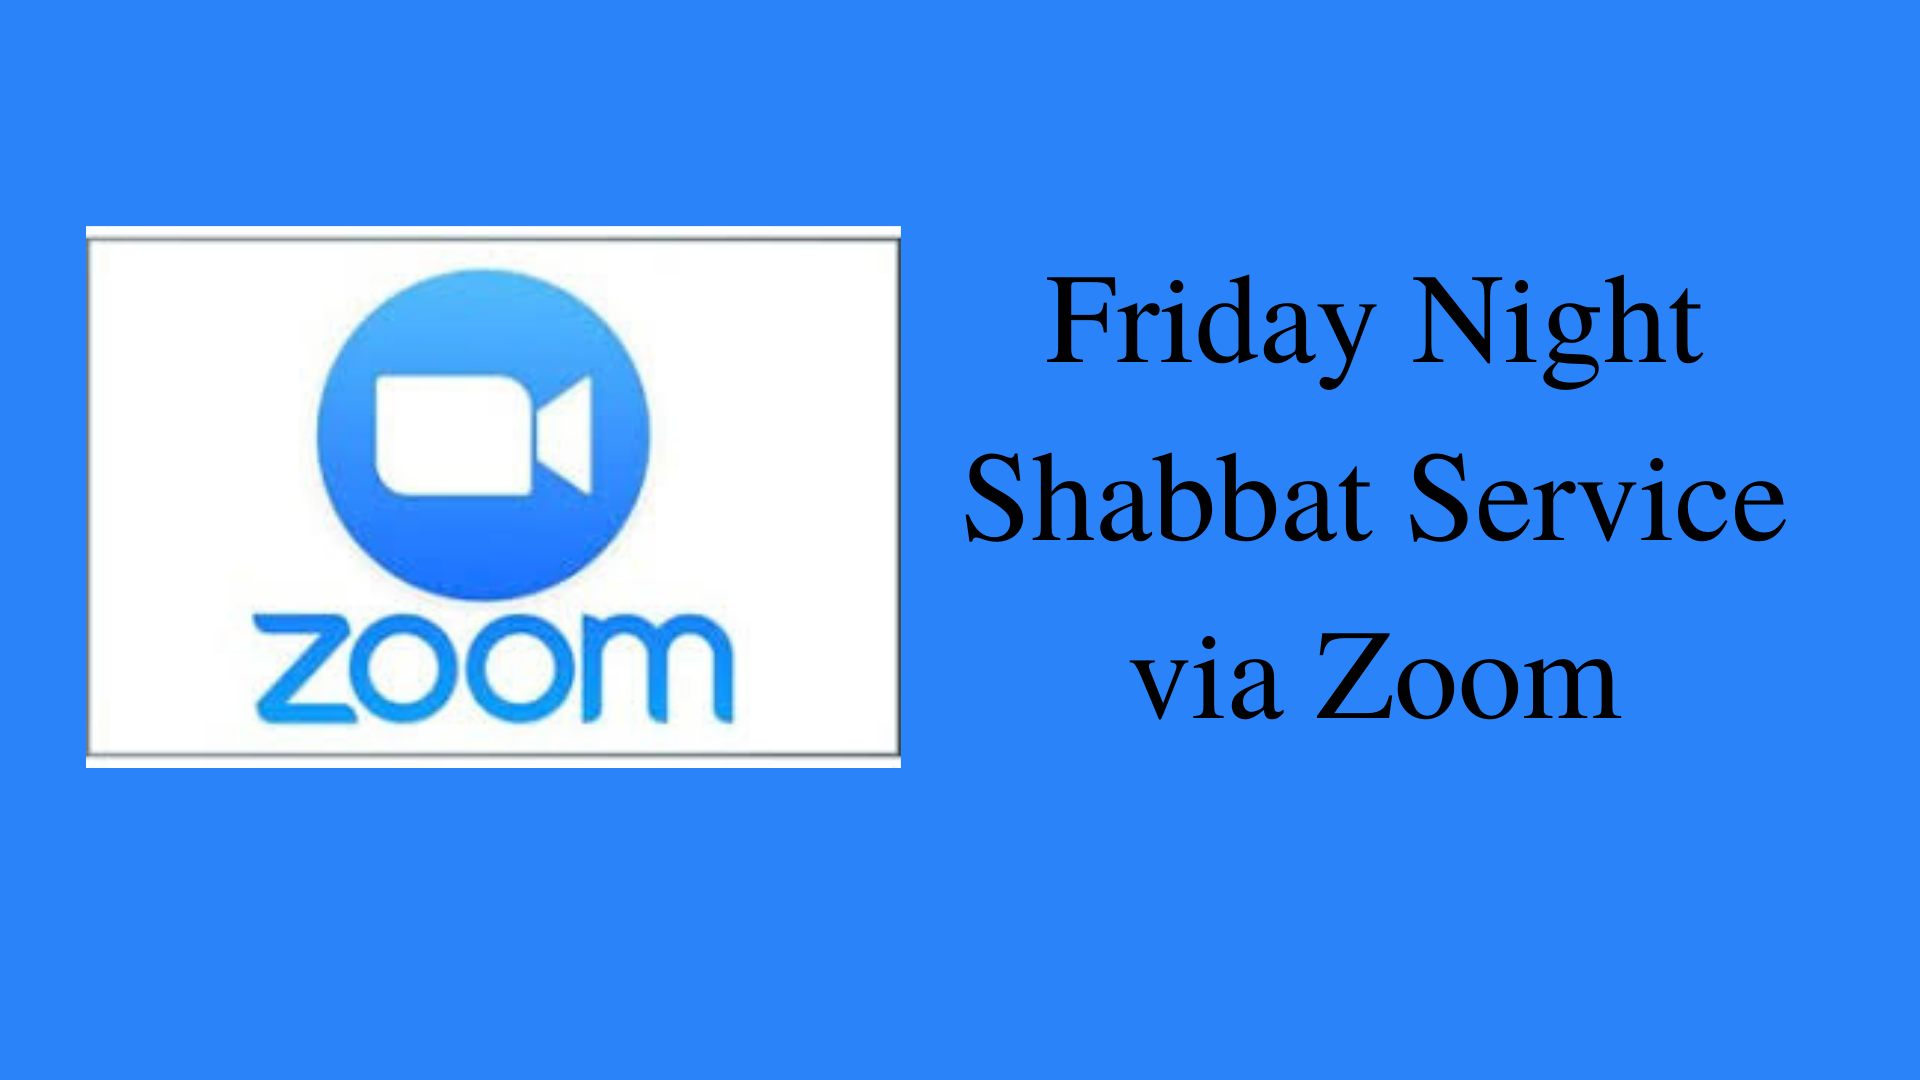 Friday Night Shabbat Service via Zoom